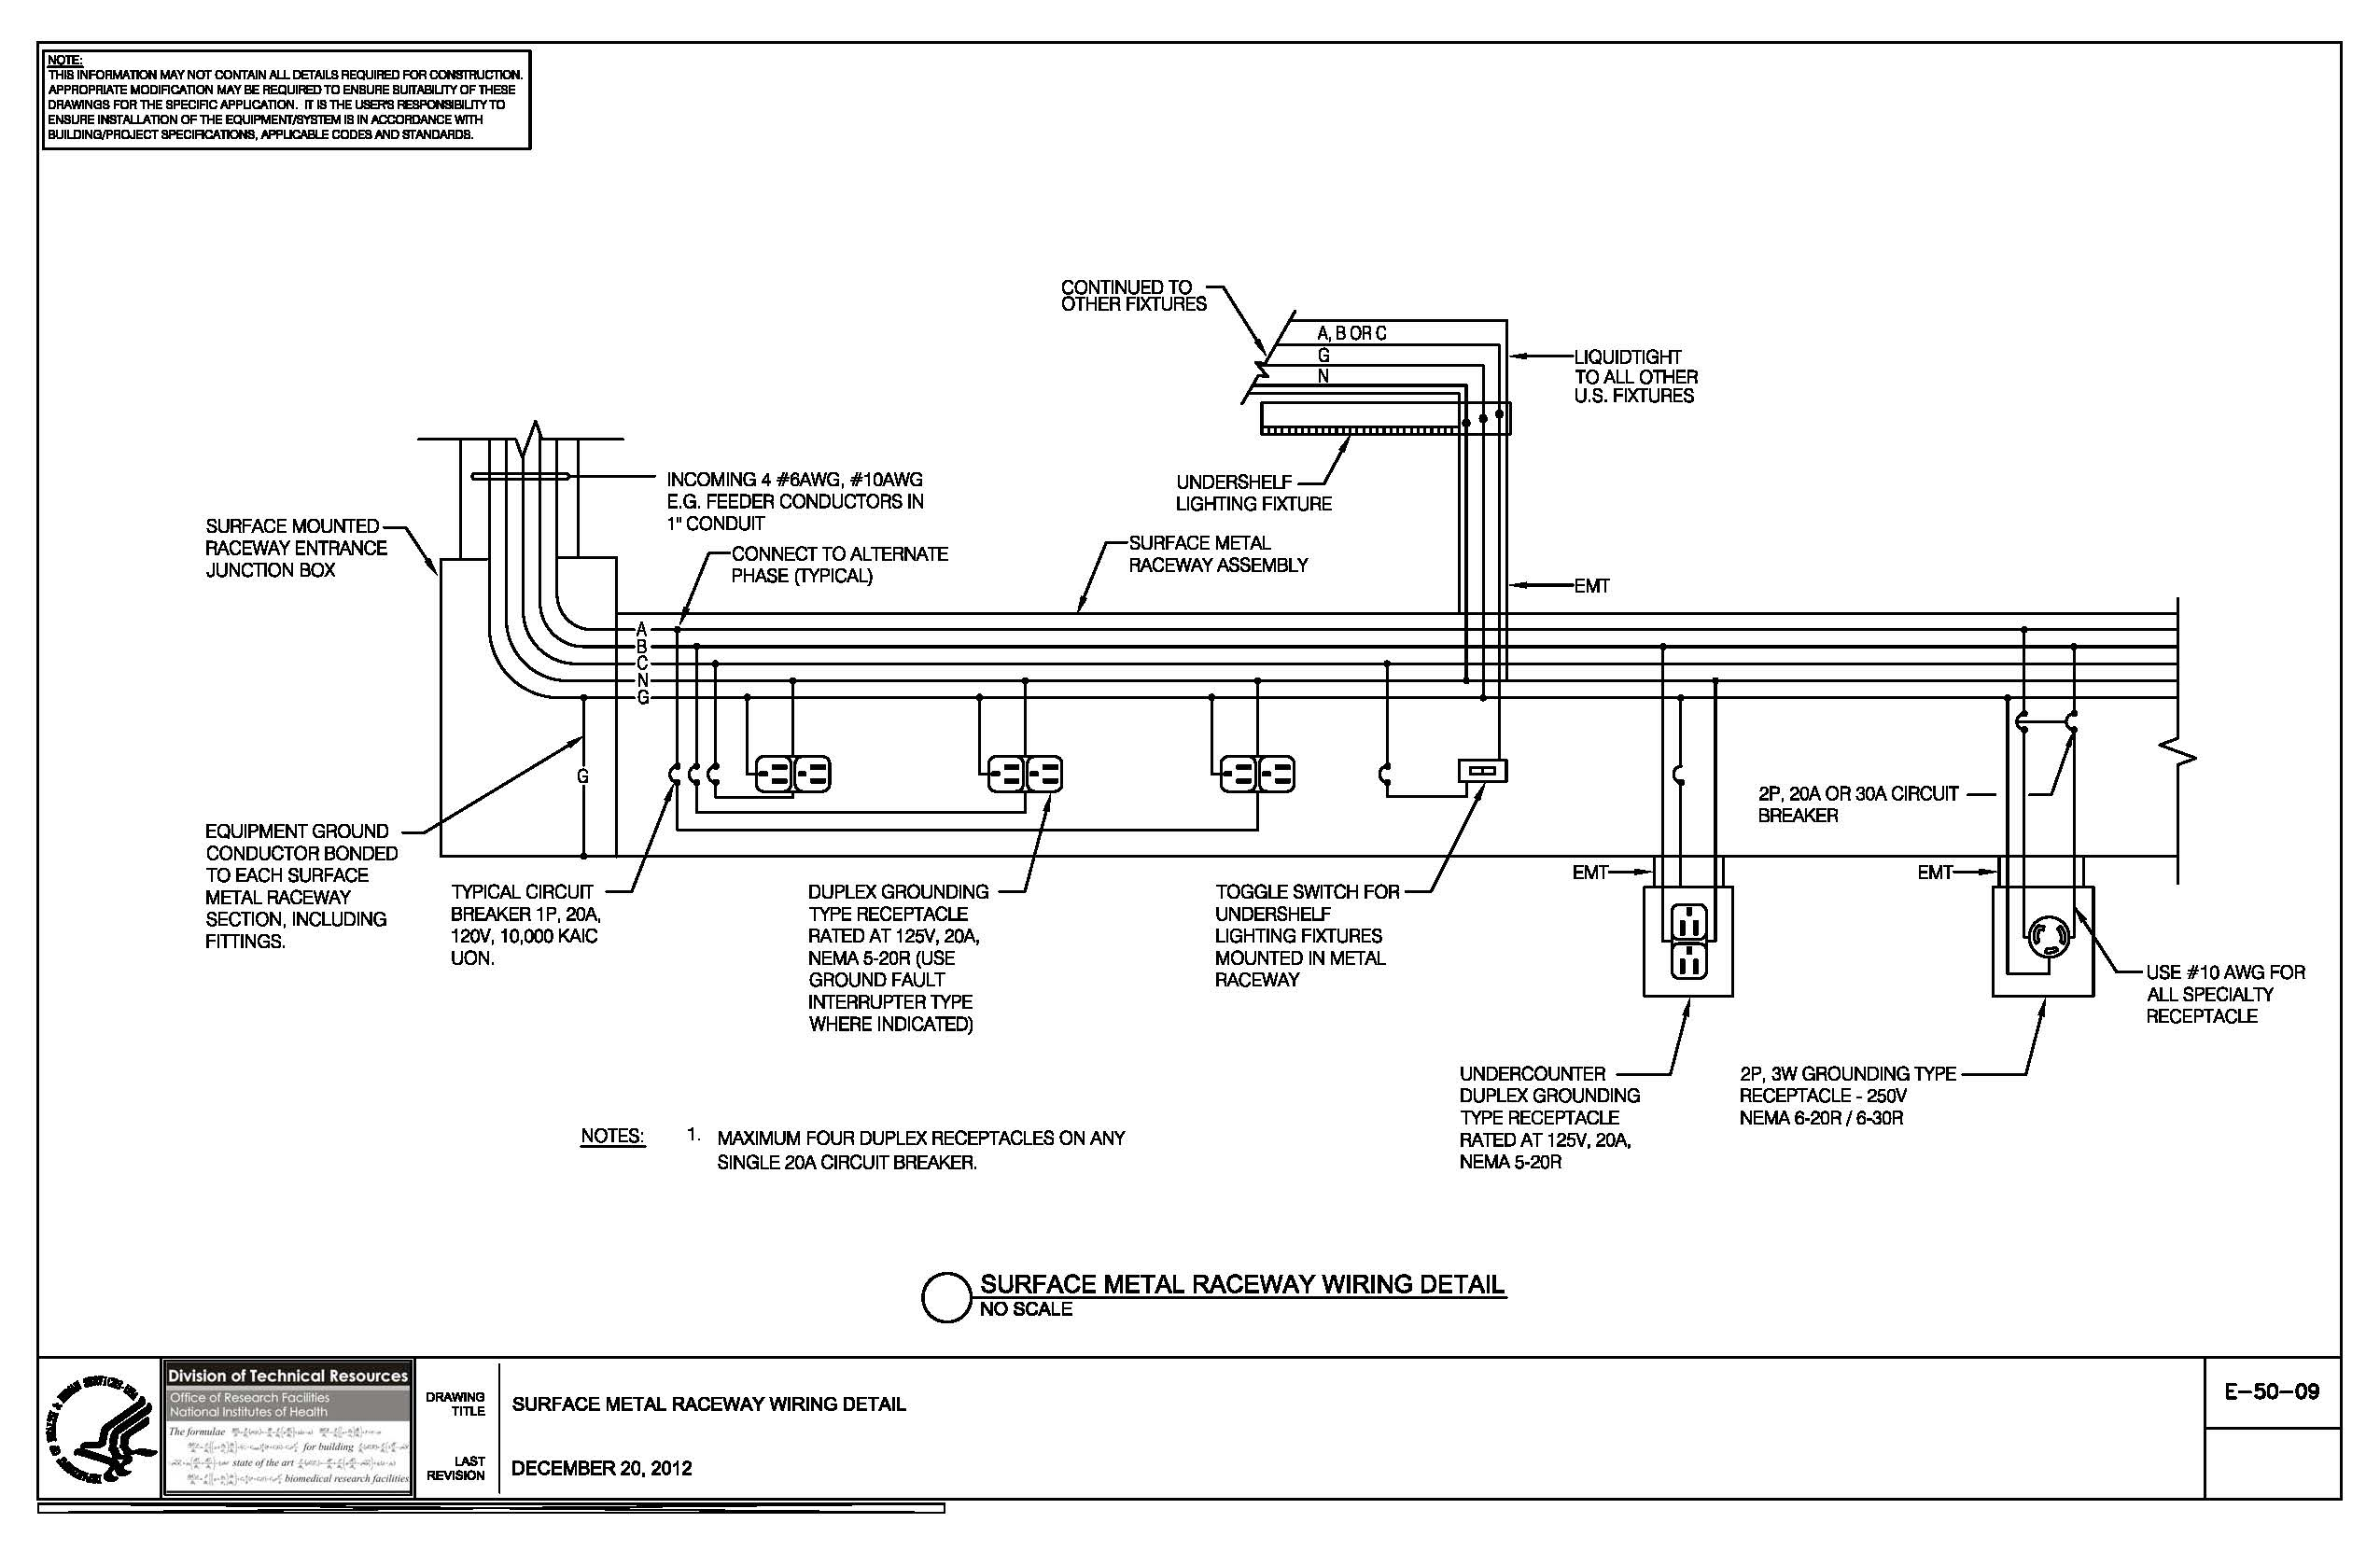 western ice breaker wiring diagram Collection-of E 50 09 Surface Metal Raceway Wiring Detail 9-h